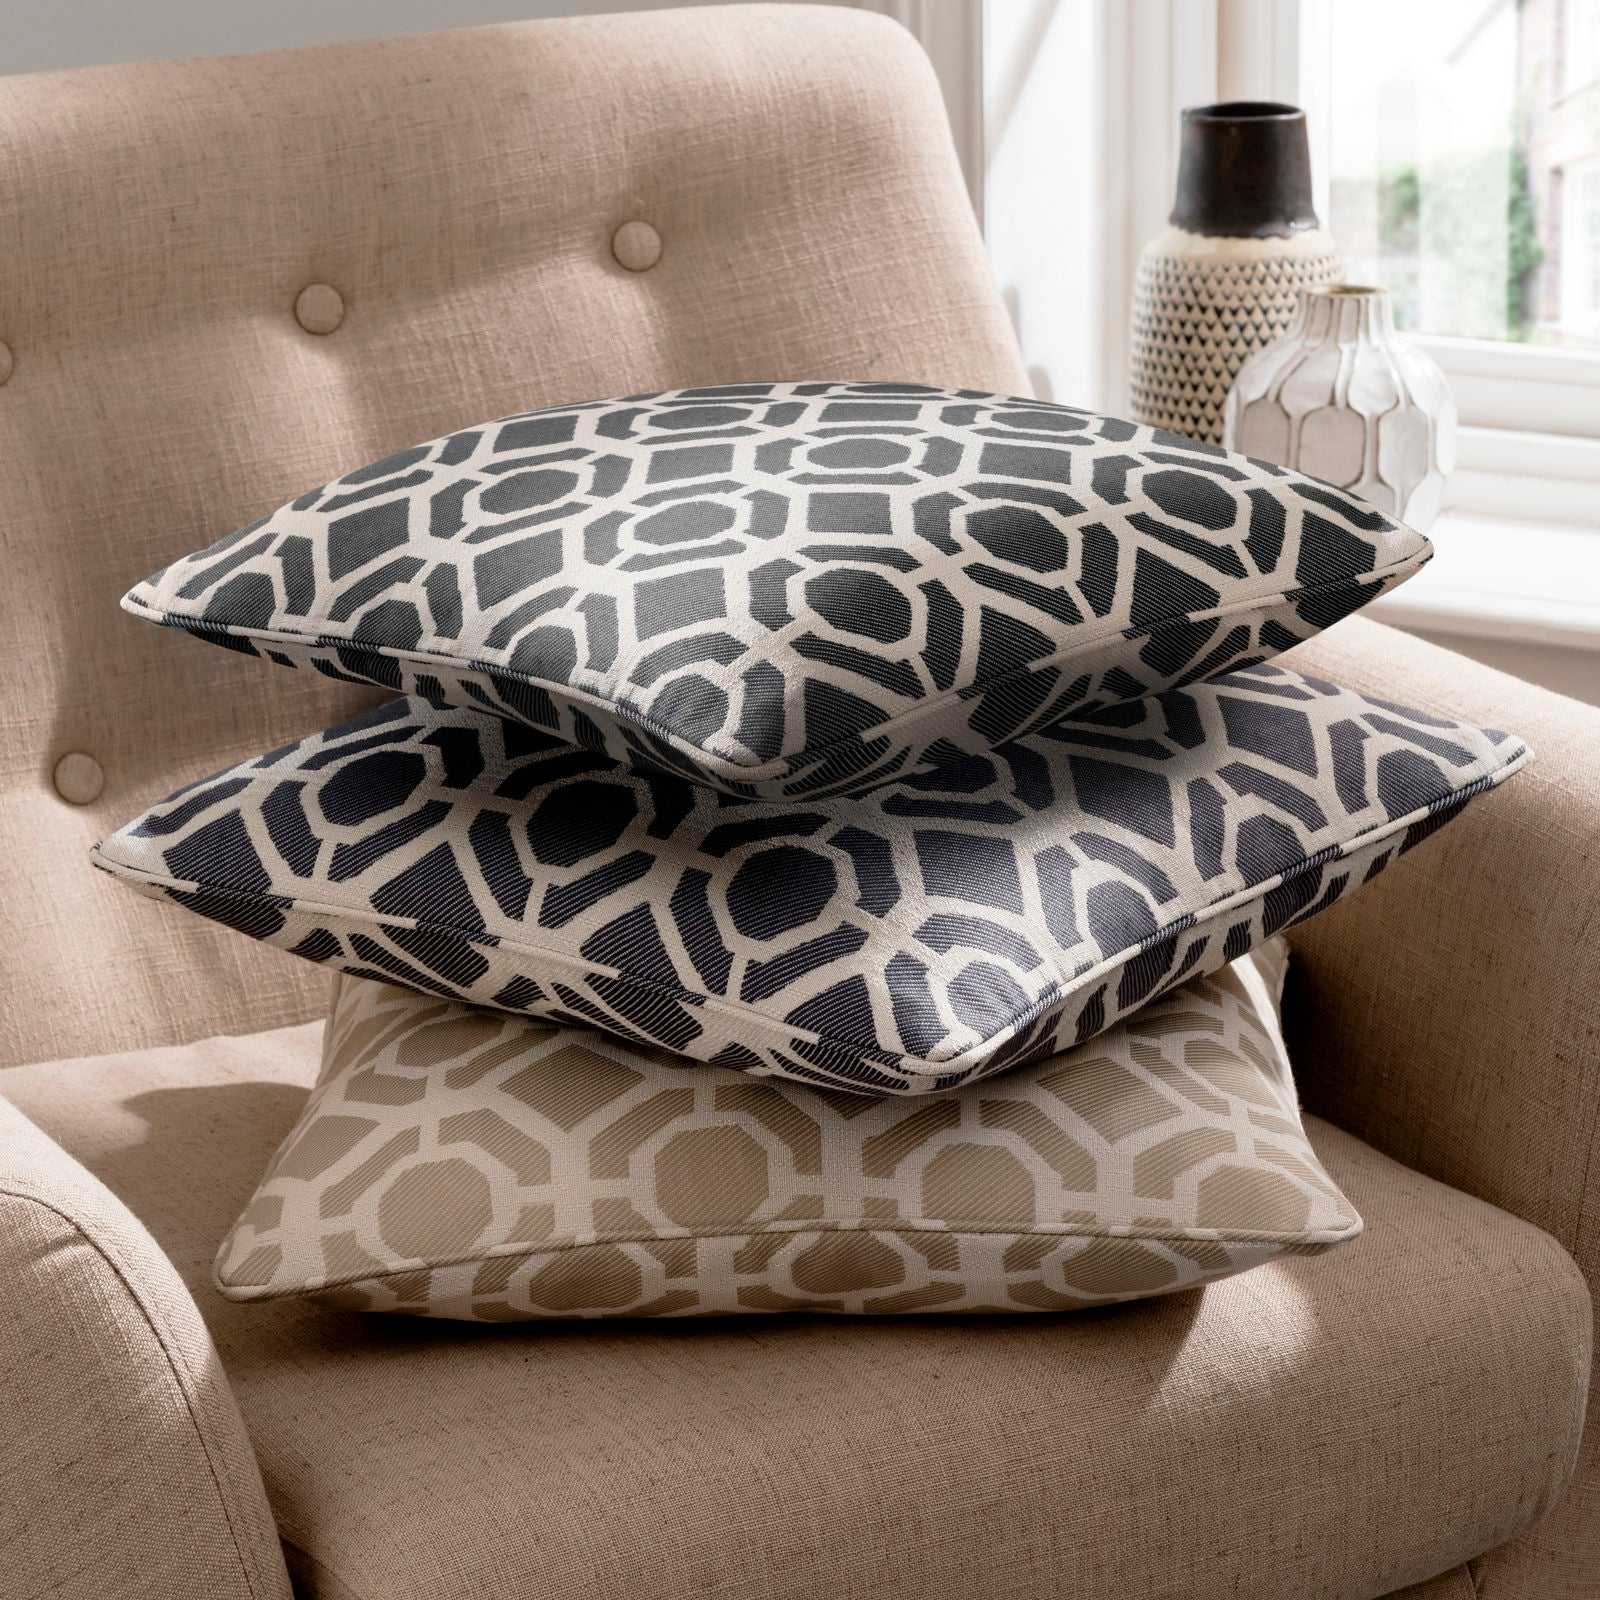 Clarke & Clarke Designer 'Castello' Cushion | Mushroom Two Tone Geometric Design